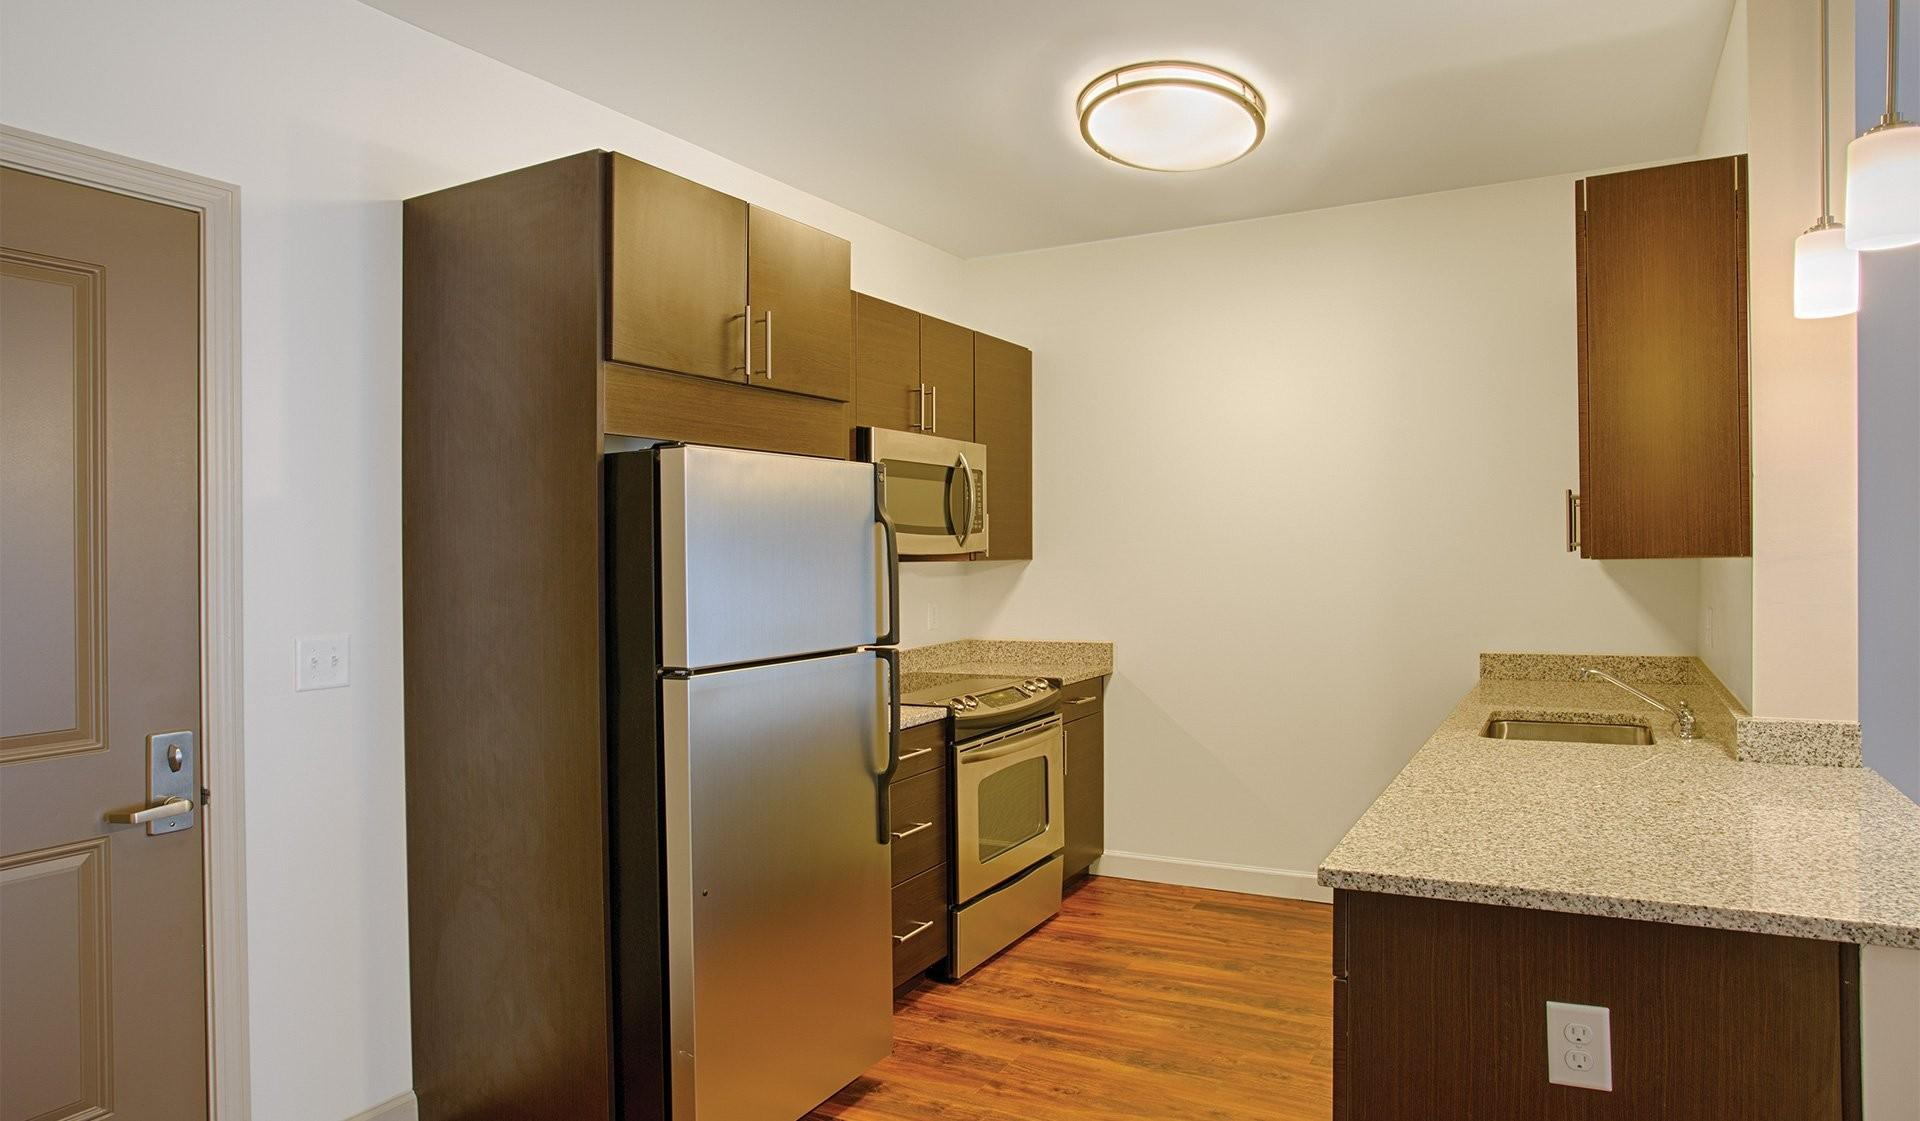 Bedroom Apartments For Rent Watertown Ma